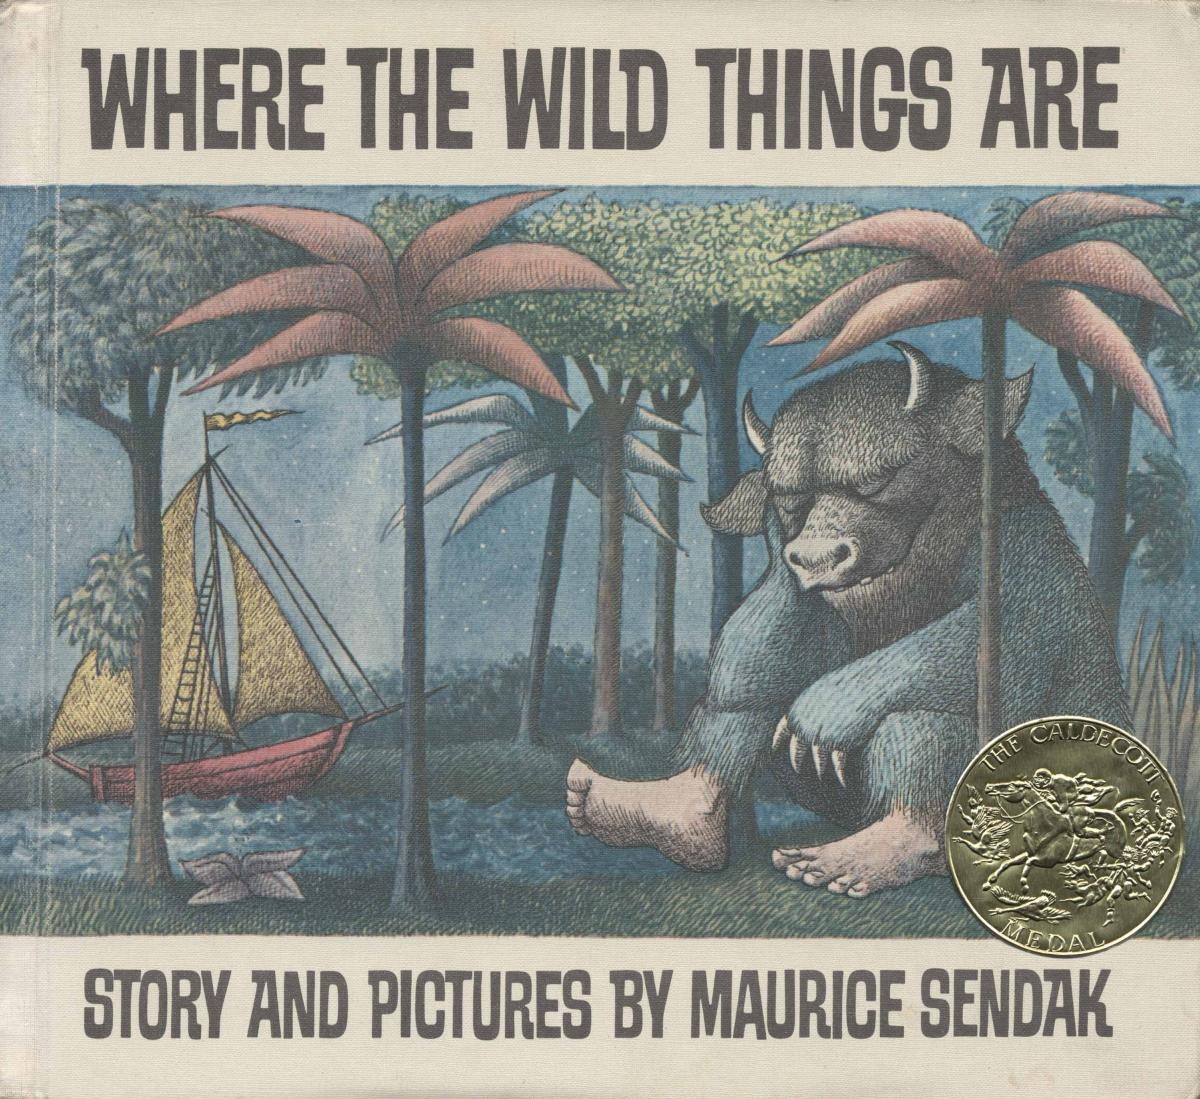 Where the Wild Things Are - book cover image